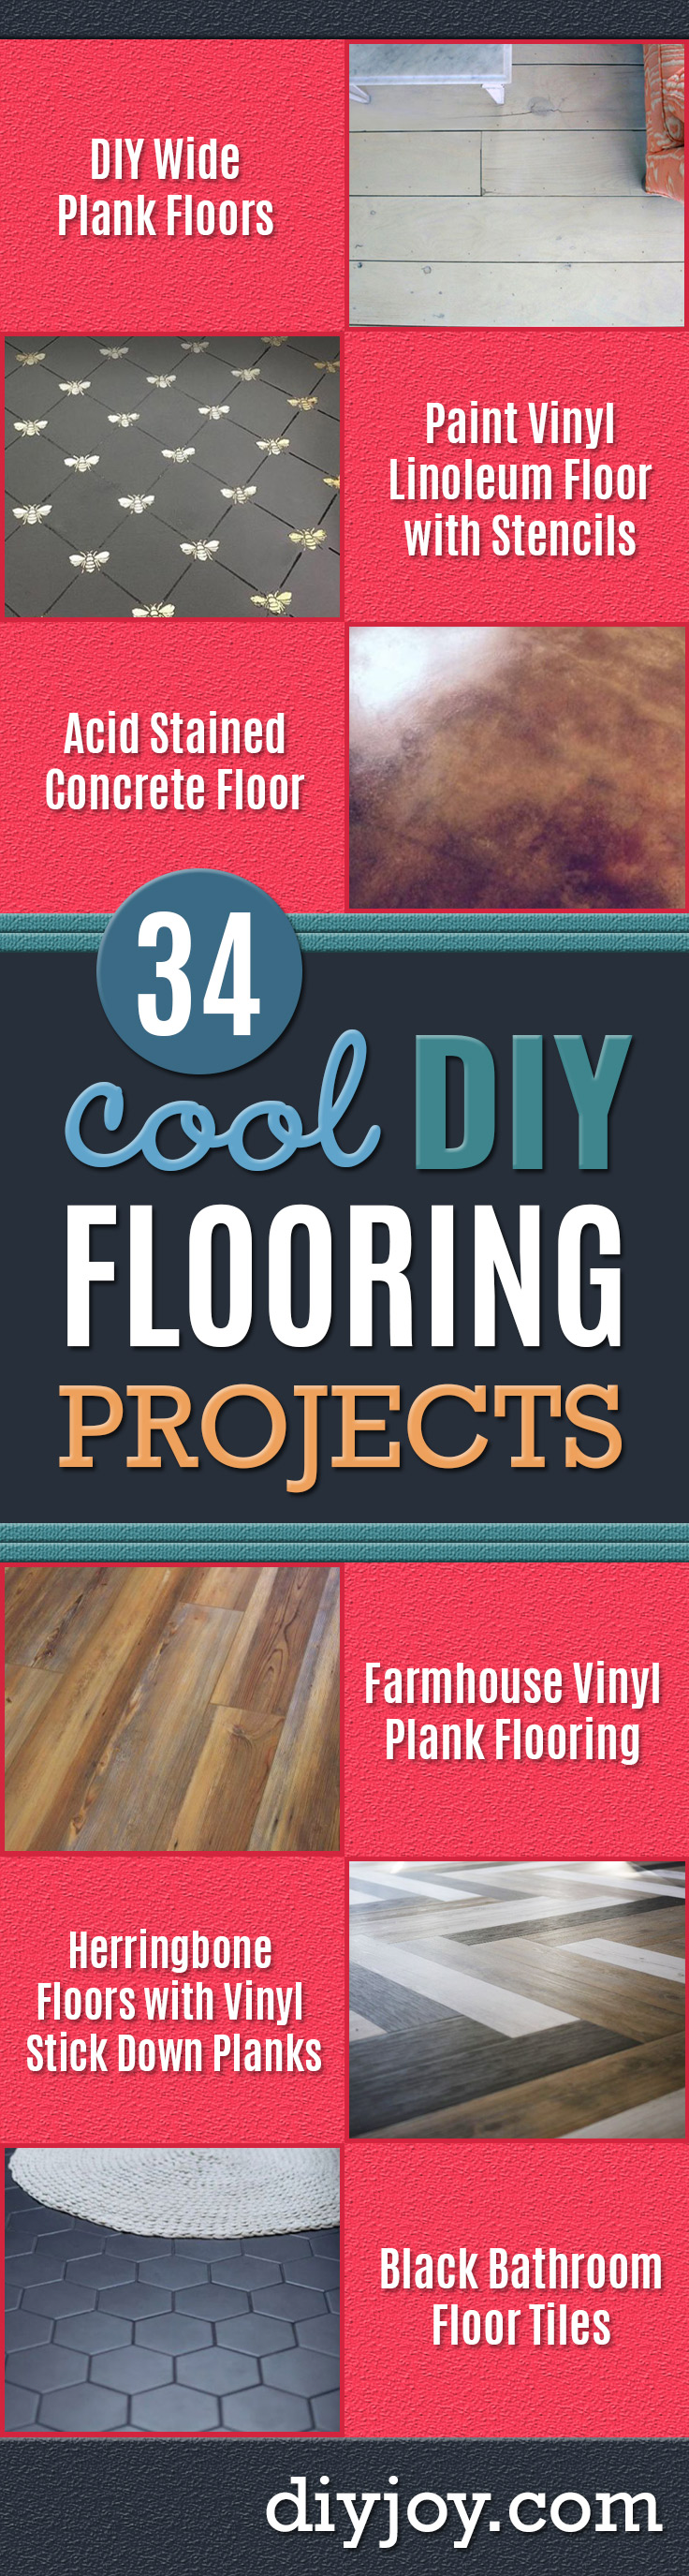 34 diy flooring projects that will transform your home diy flooring projects cheap floor ideas for those on a budget inexpensive ways to solutioingenieria Gallery